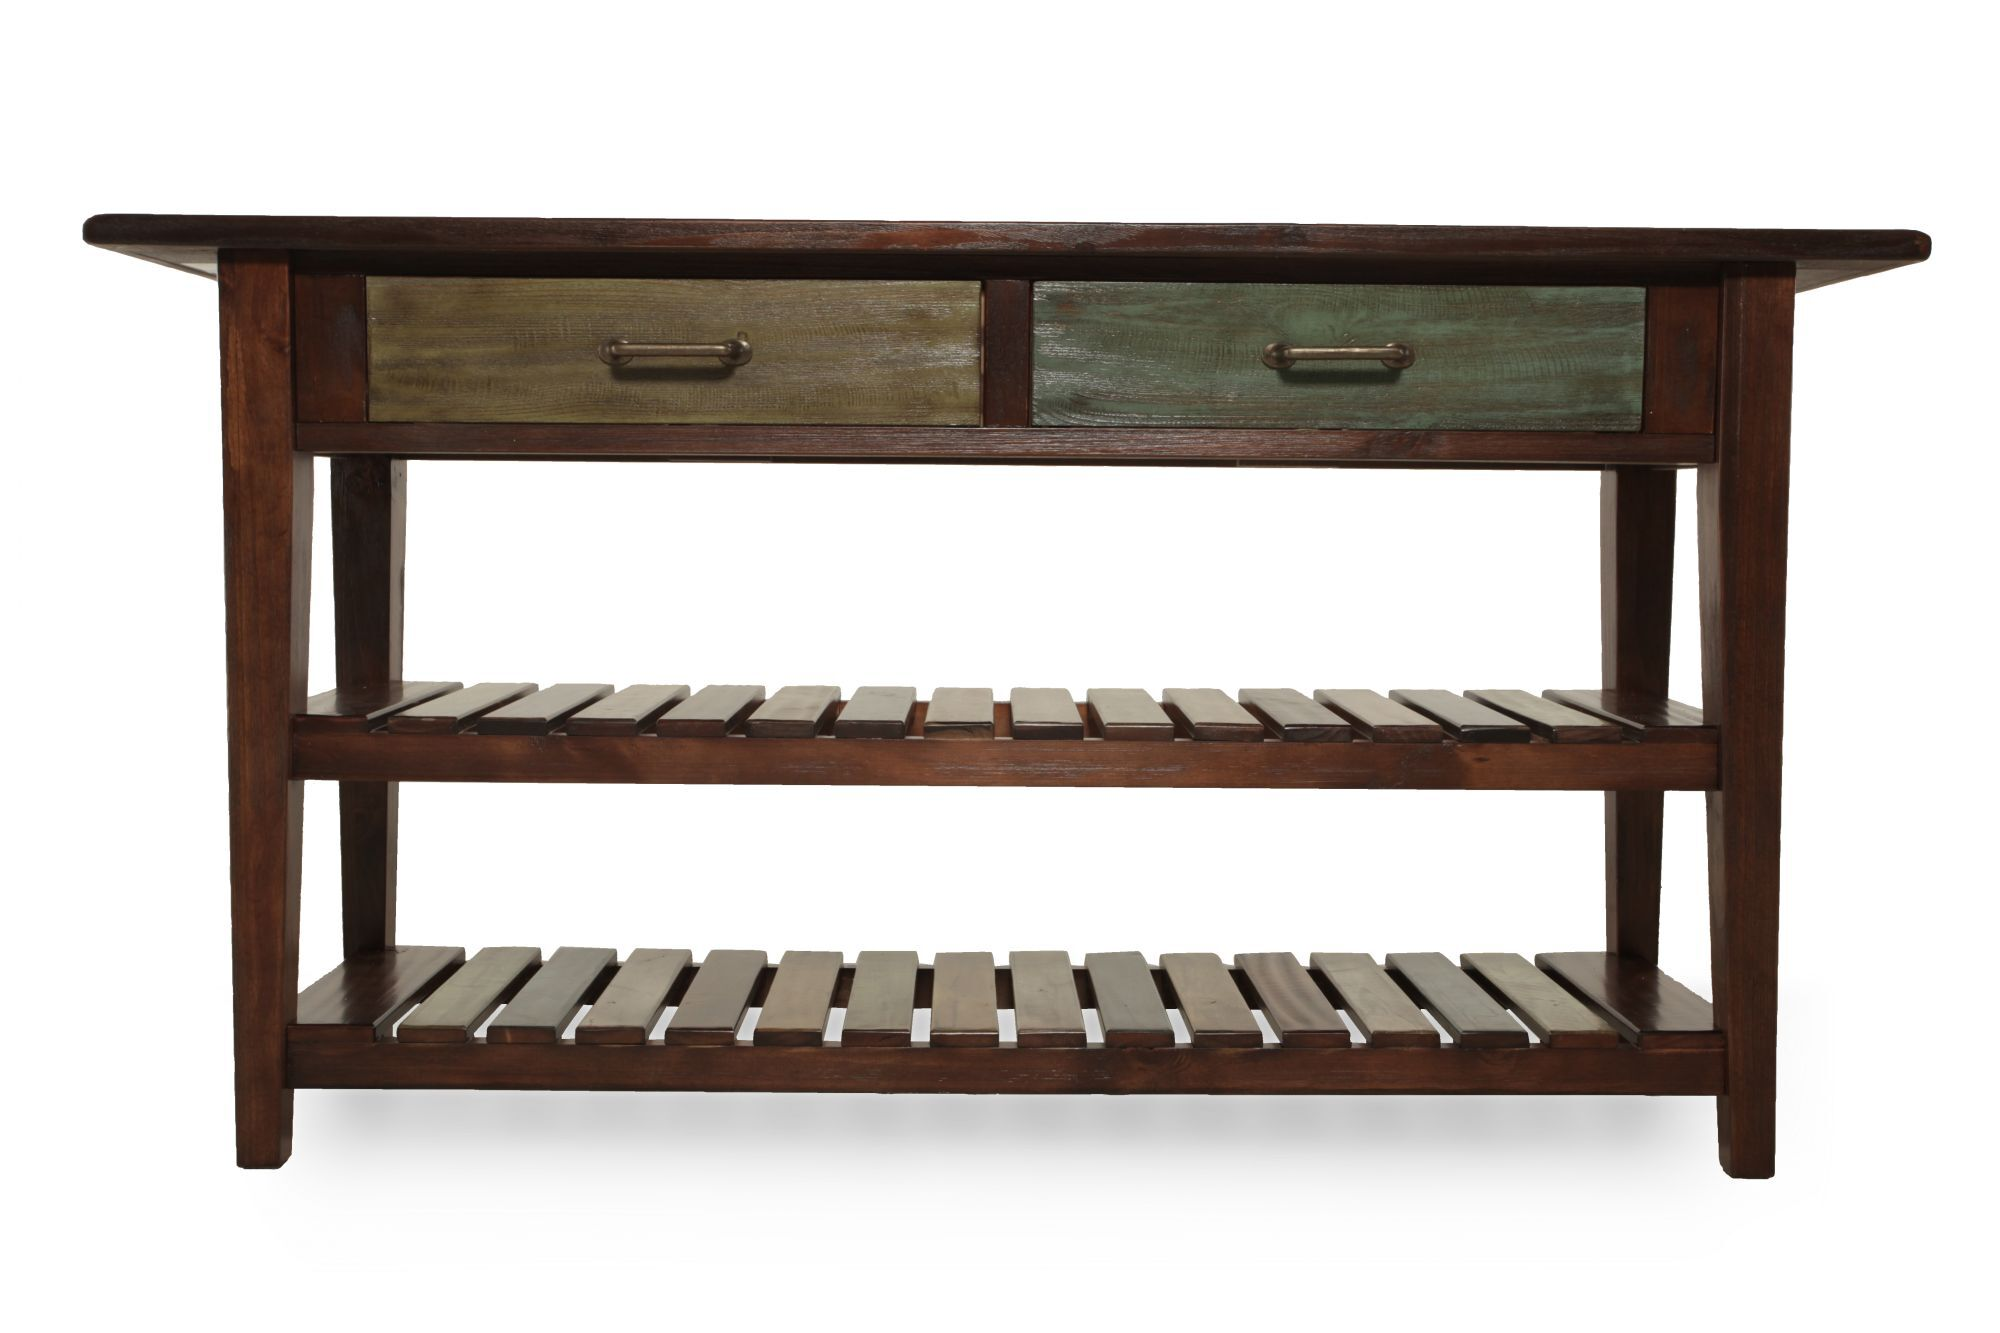 Two Xylophone Shelf Casual Console Table In Rustic Brown